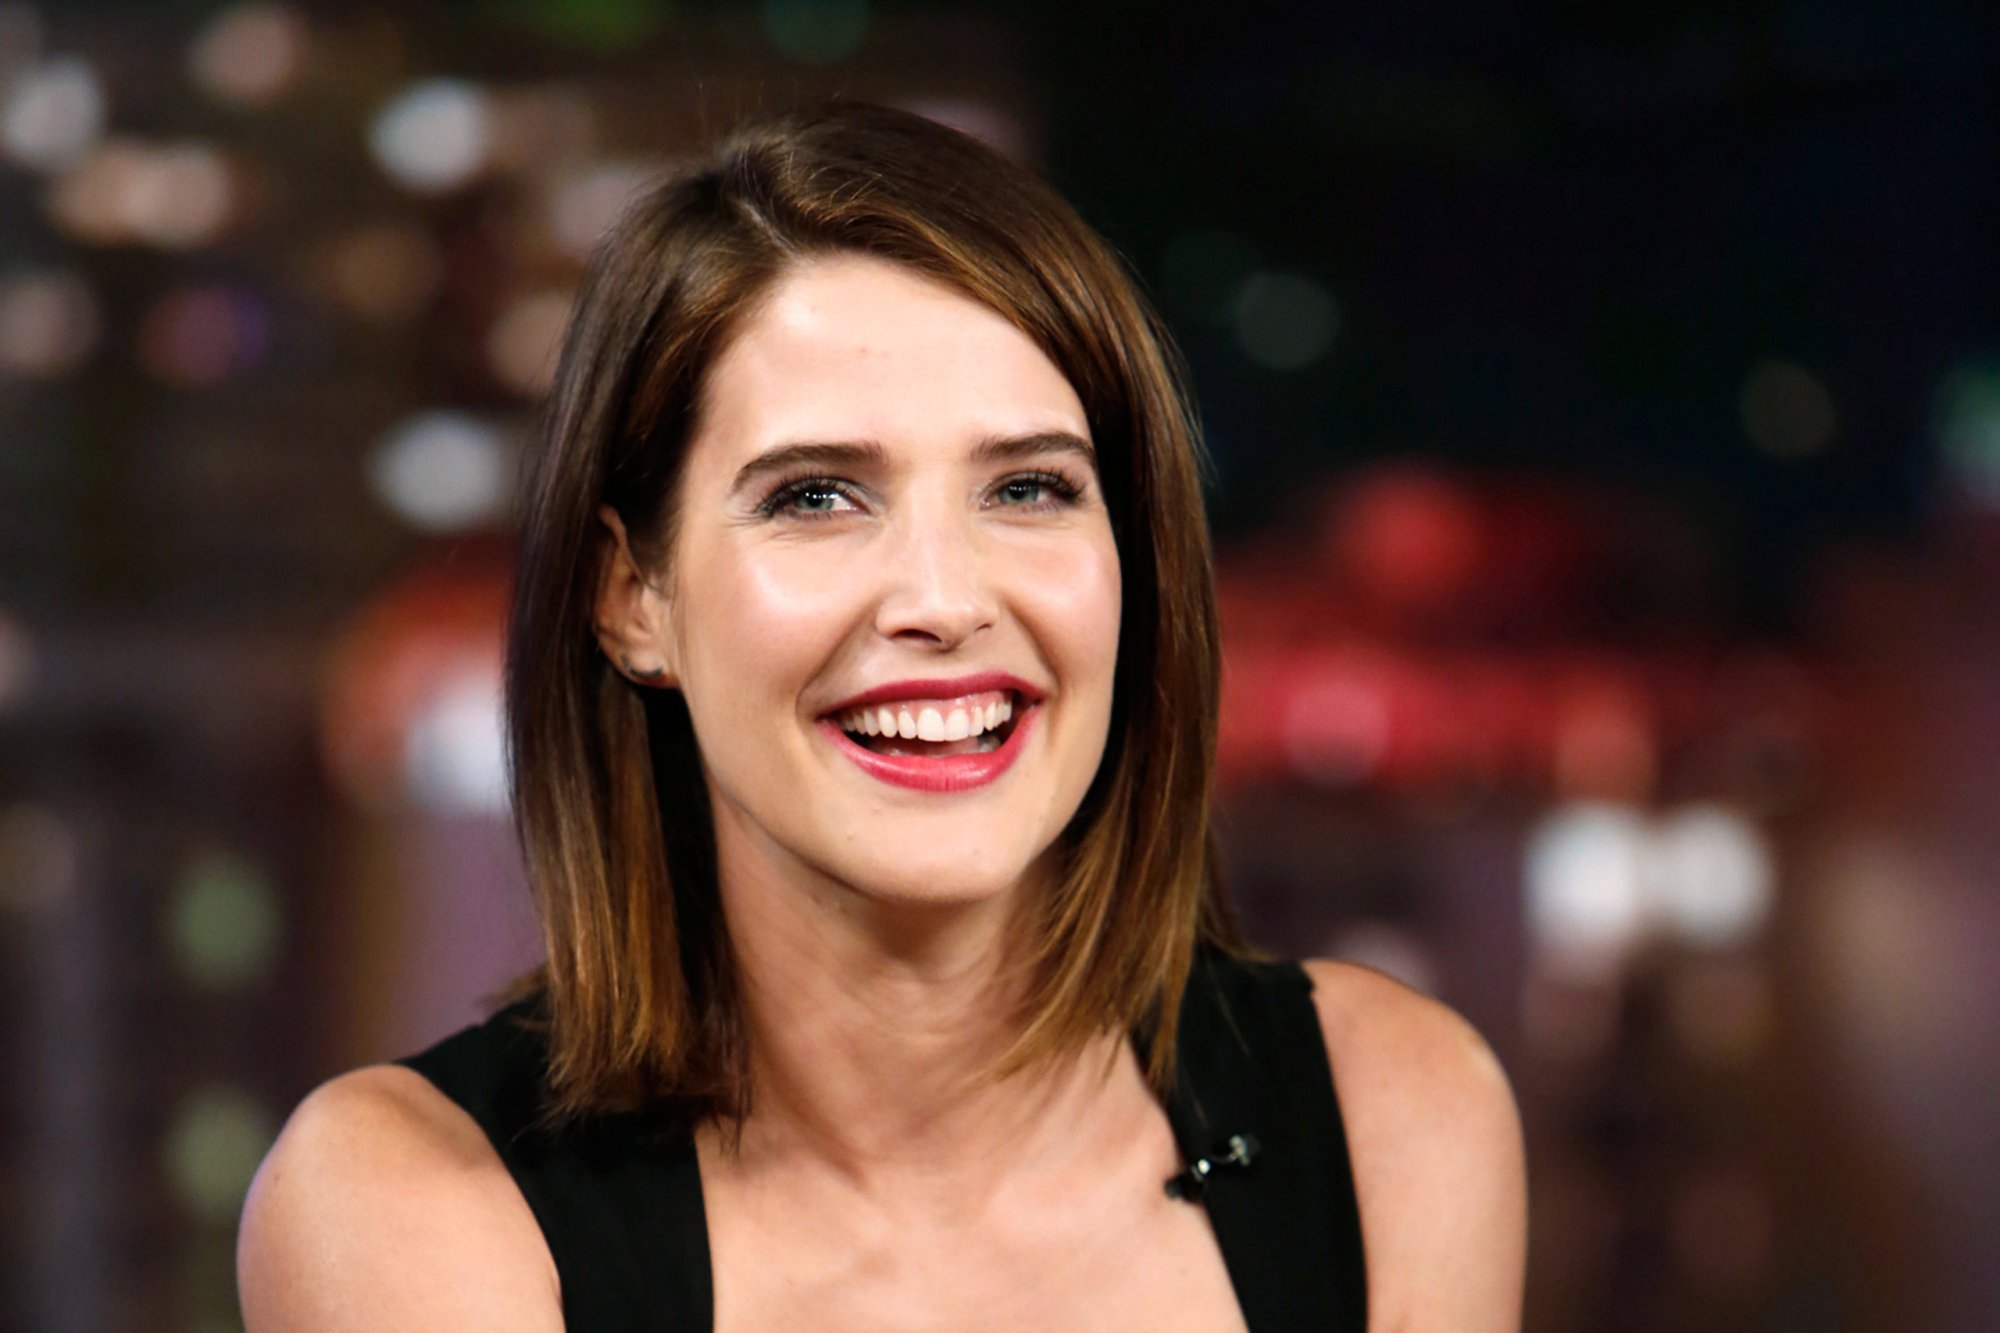 Cobie Smulders Canadian Actress, Model